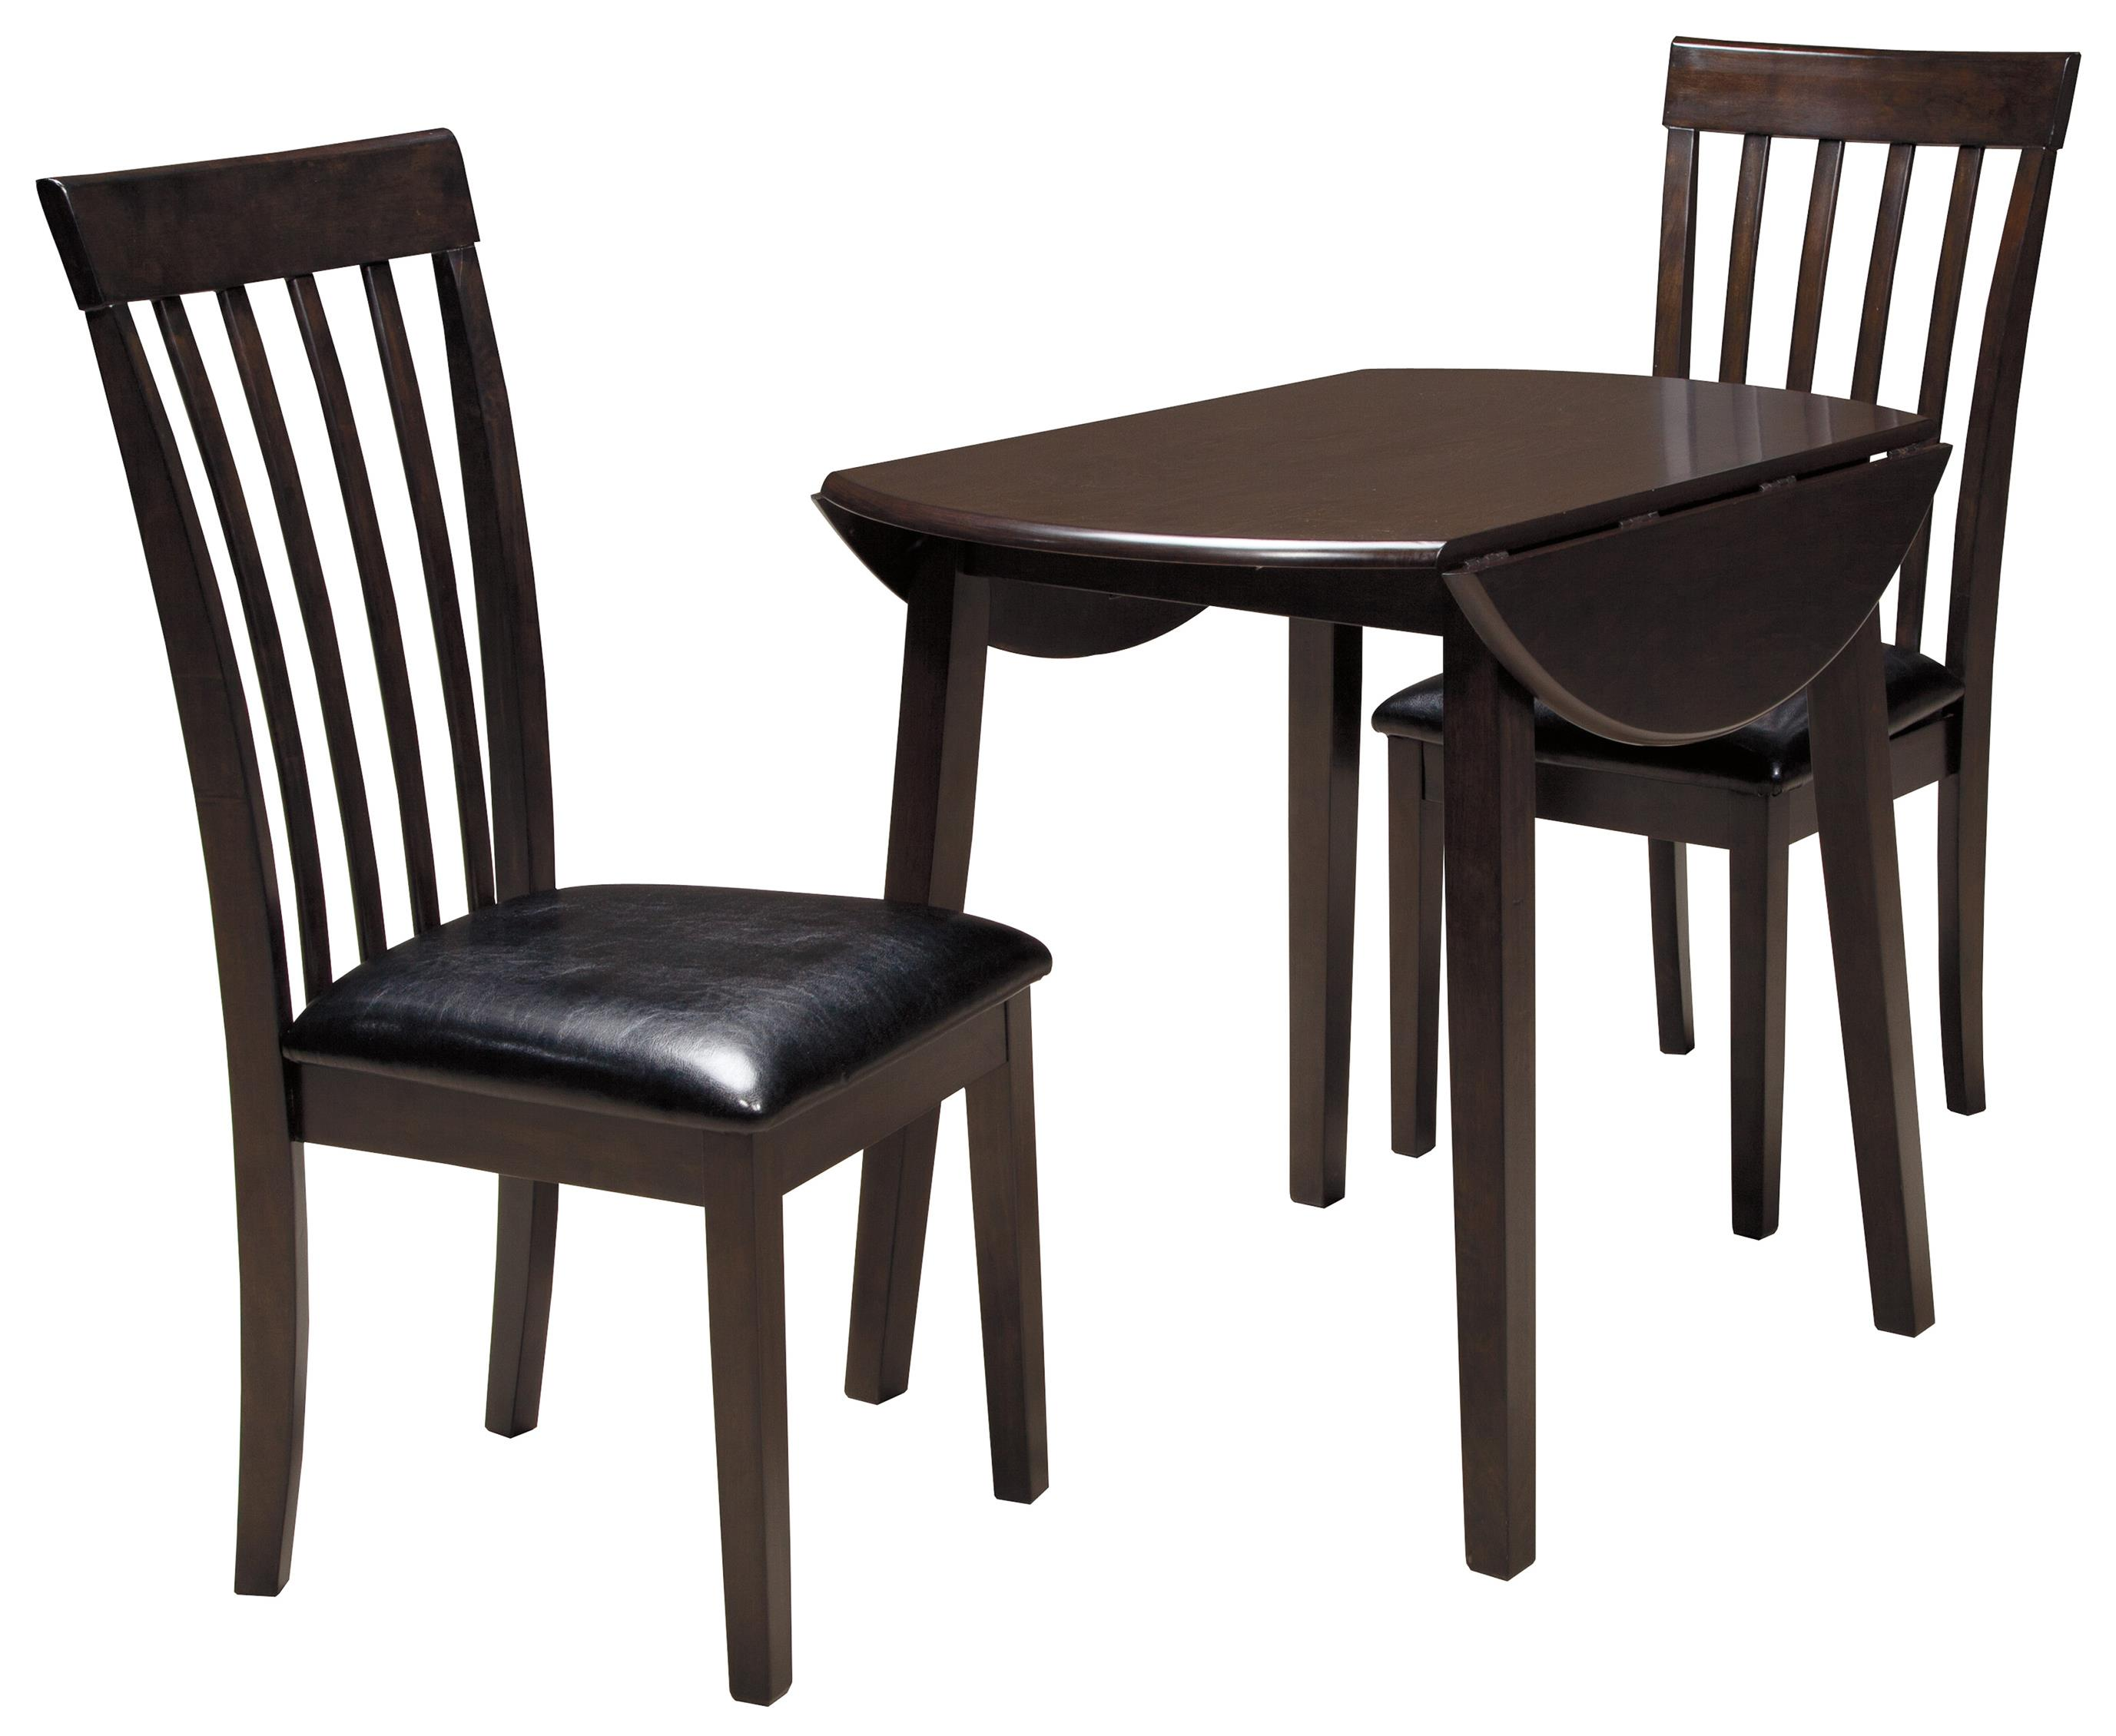 Signature design by ashley hammis 3 piece round drop leaf for Round dining room table sets with leaf